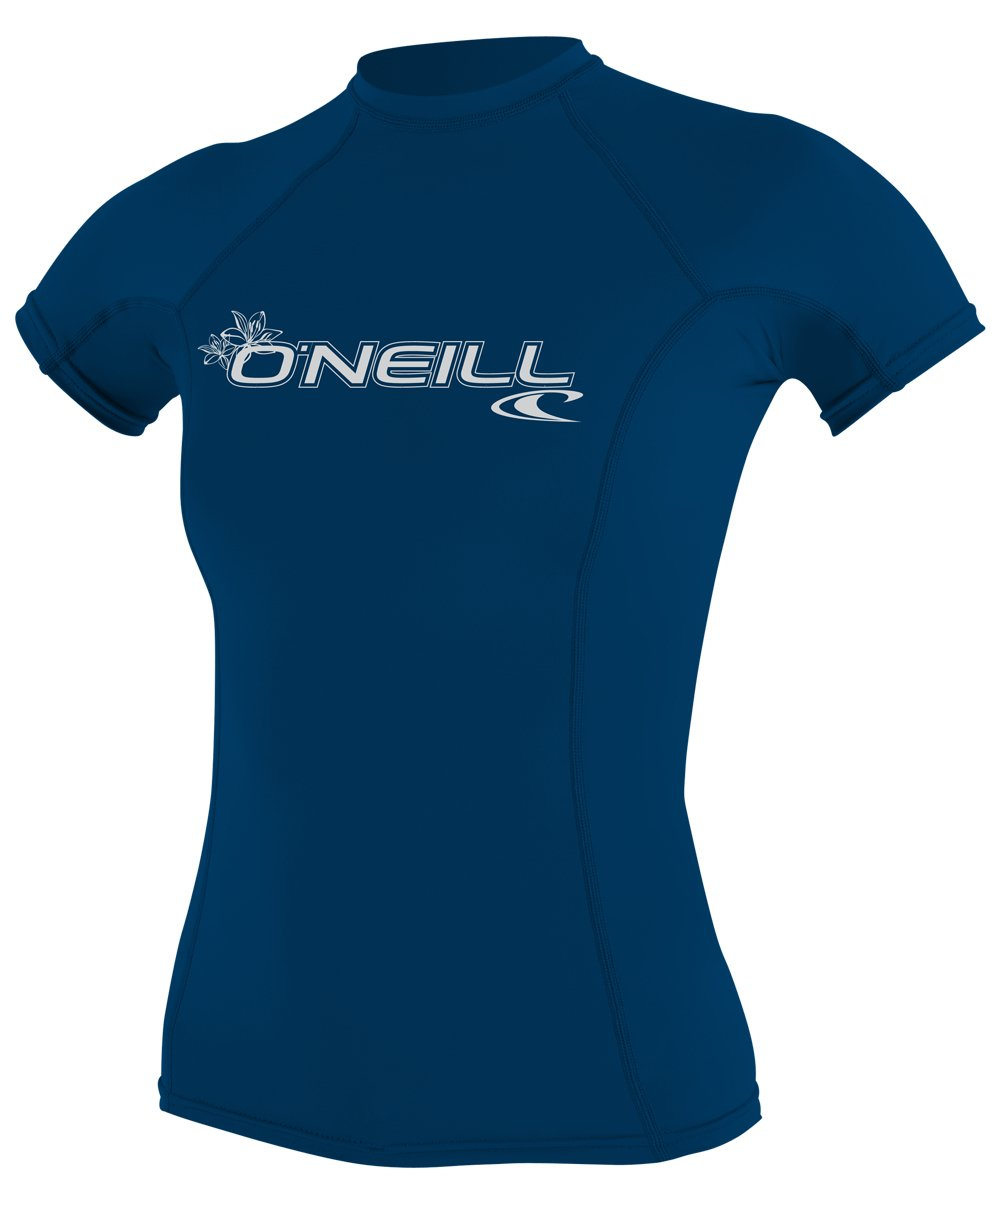 O'Neill Women's Basic 50+ Skins Short Sleeve Rash Guard, Deep Sea, X-Small by O'Neill Wetsuits